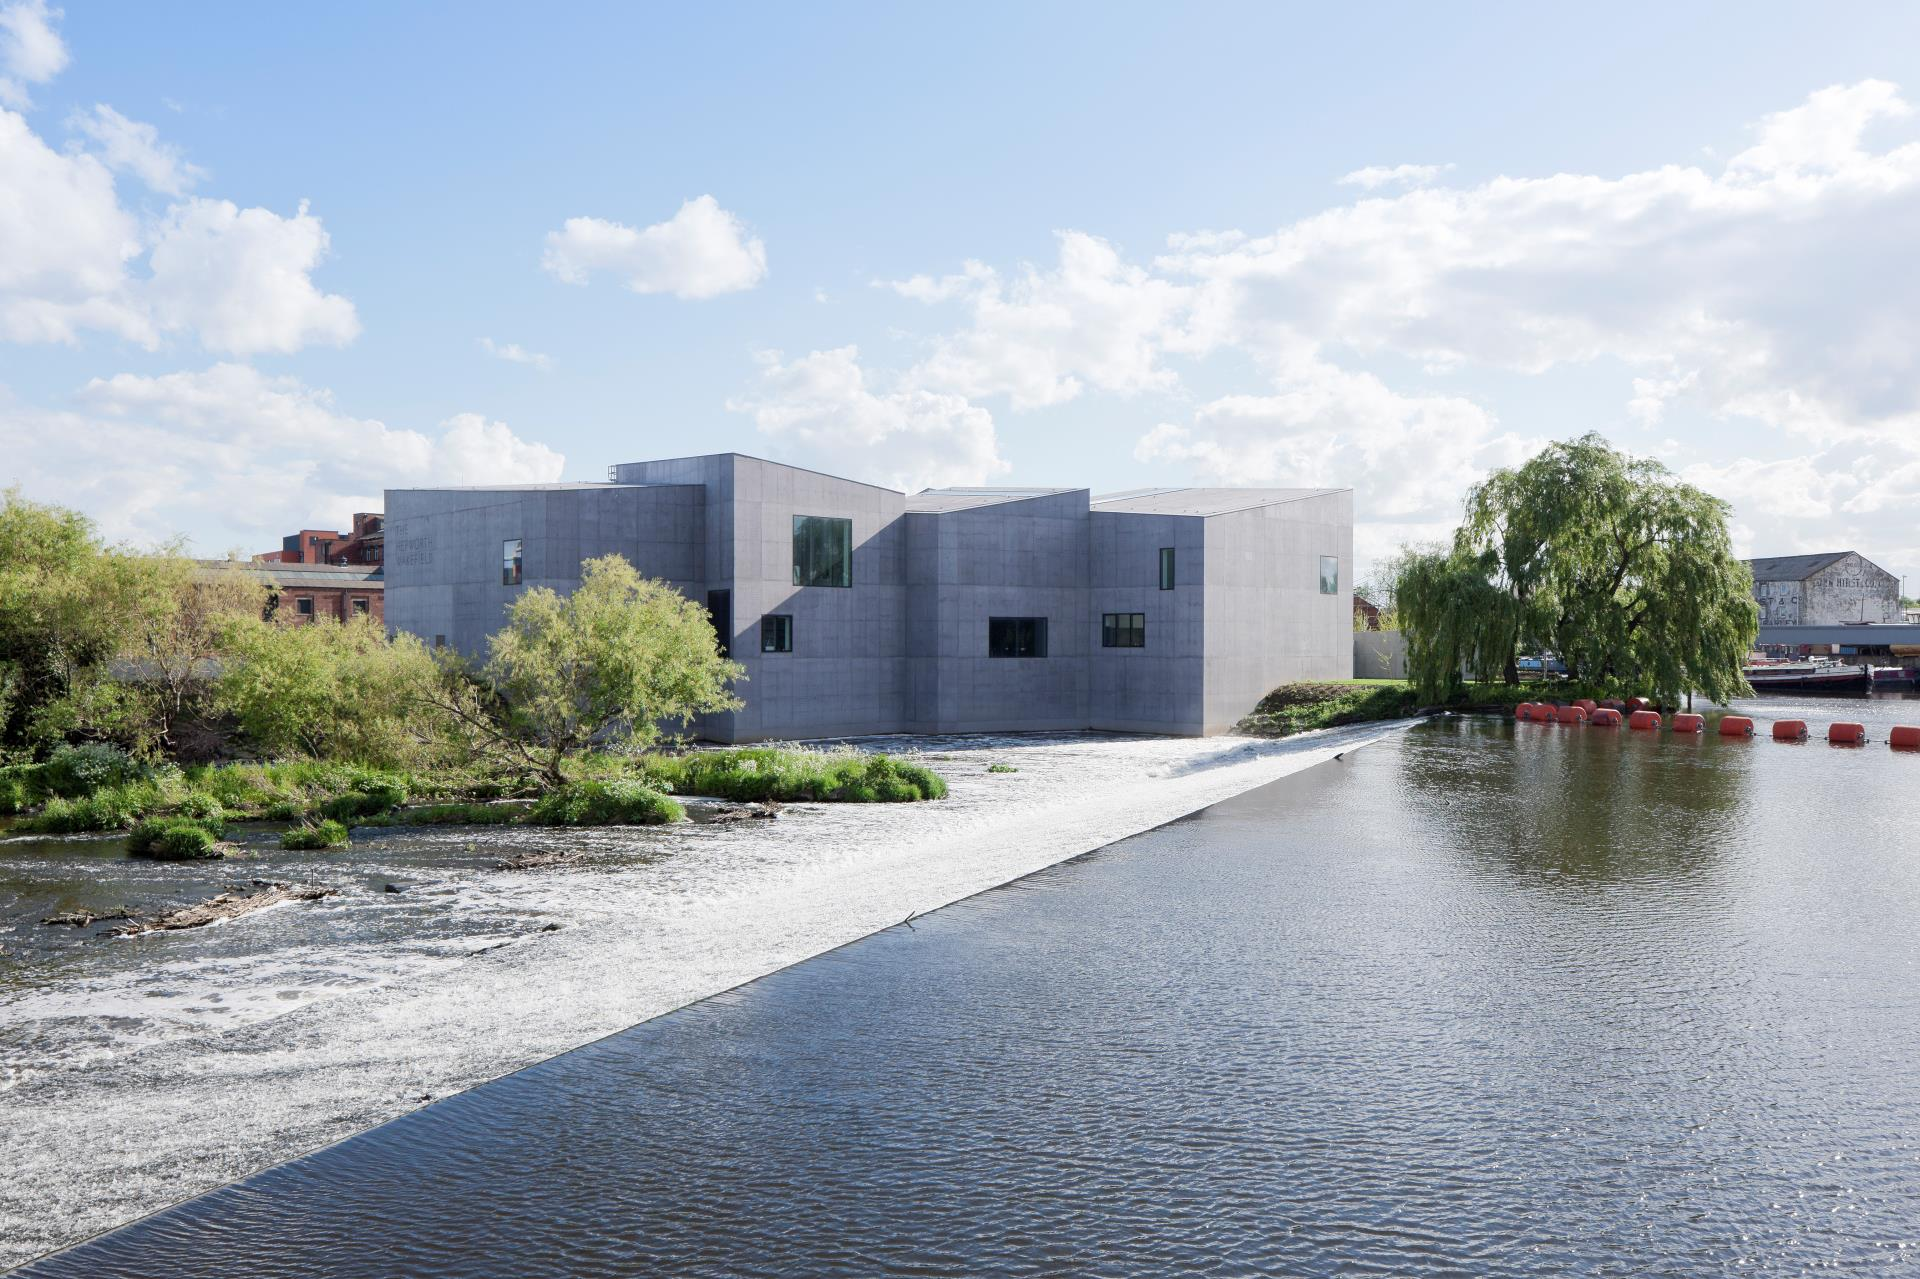 Picture of The Hepworth Wakefield